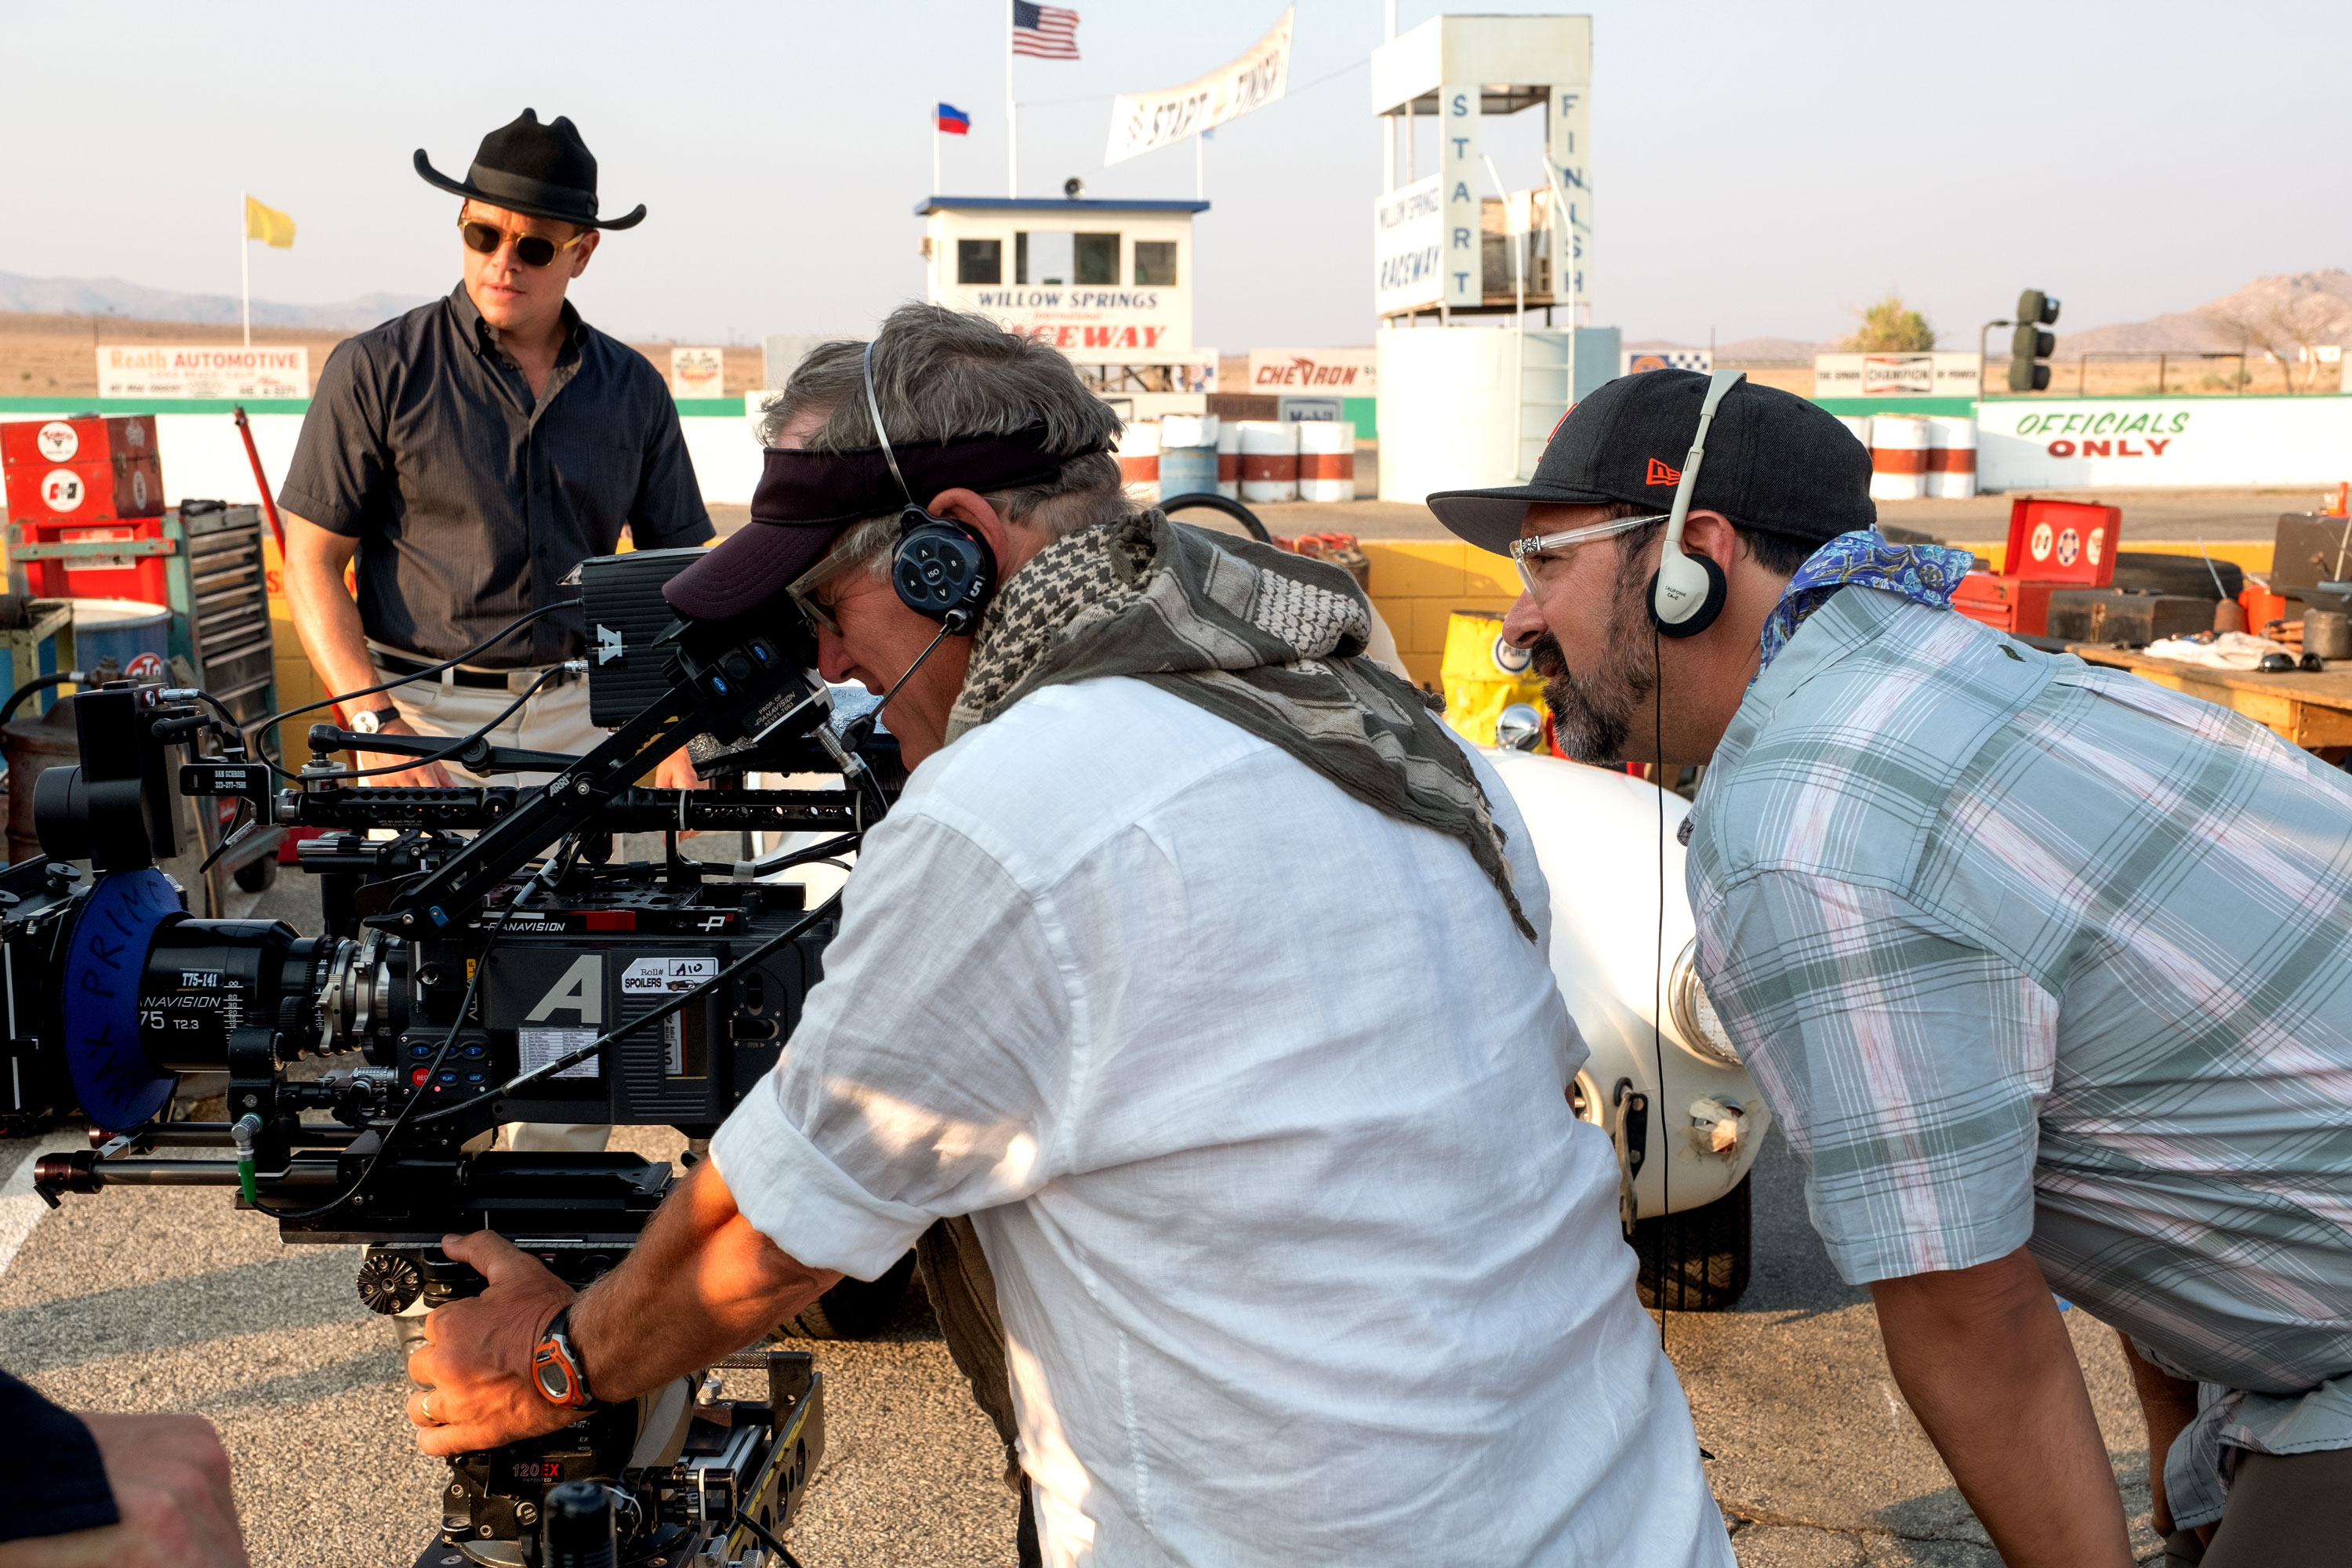 Phedon Papamichael Asc And The Alexa Lf Bring Action To Life In Ford V Ferrari